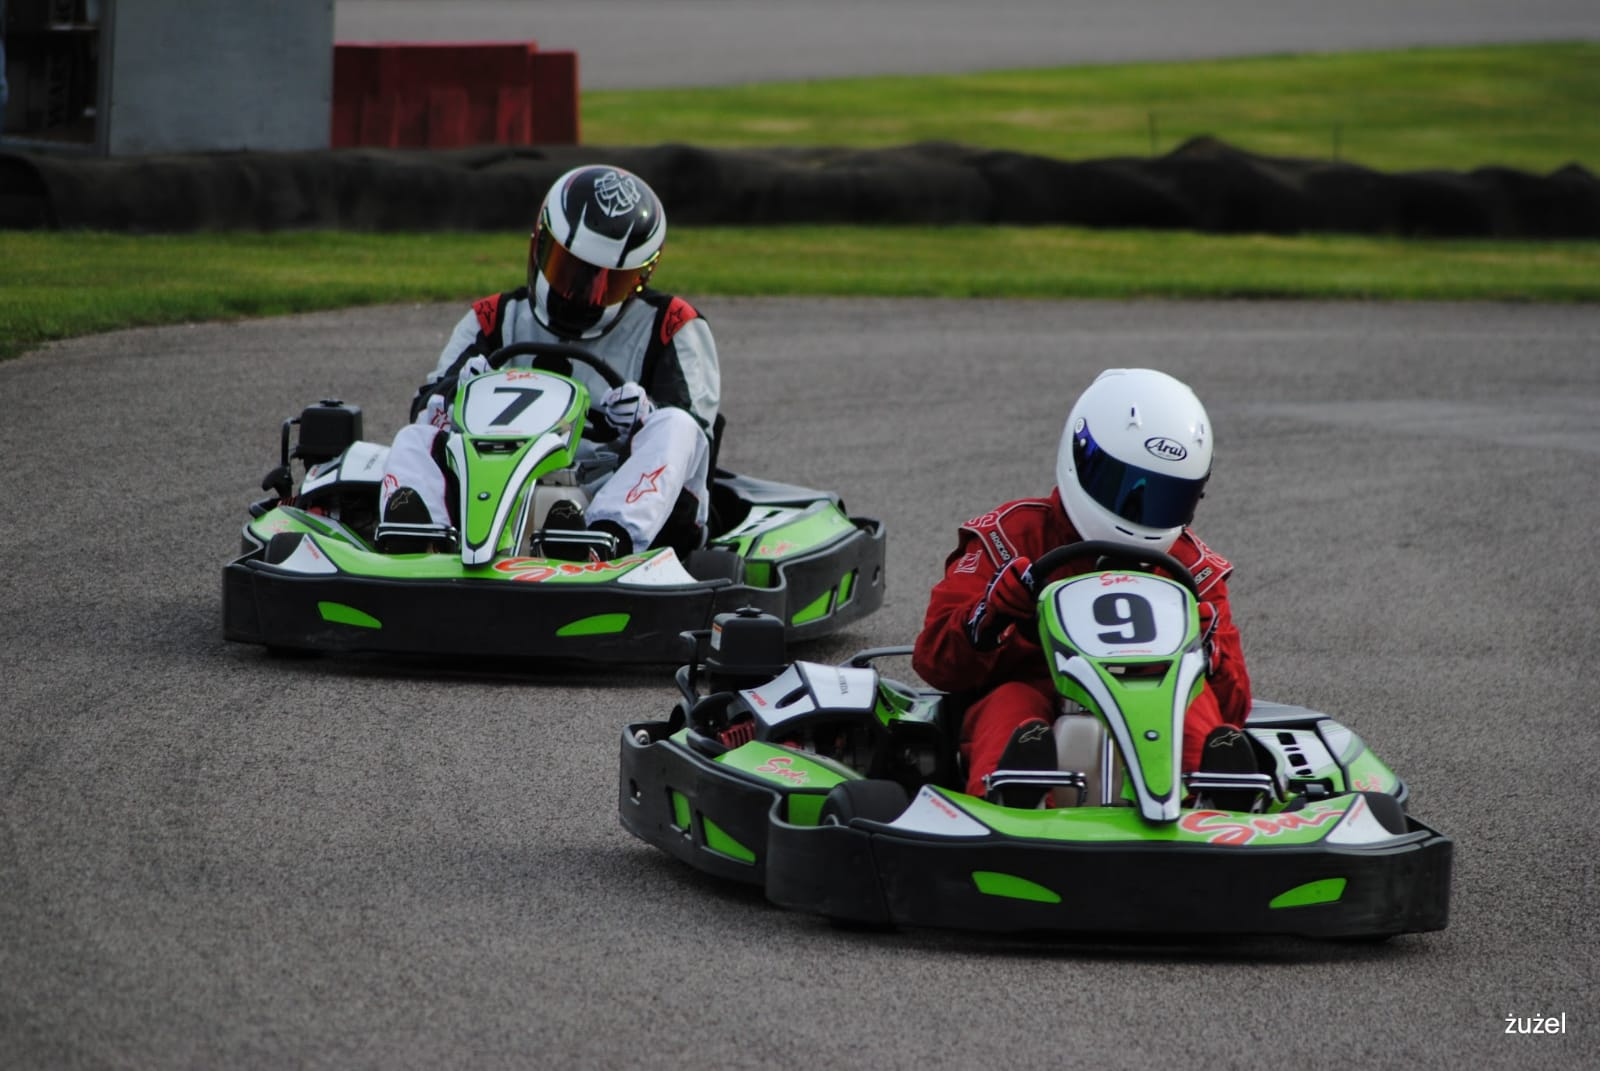 People go-carting on the course at Sutton Circuit